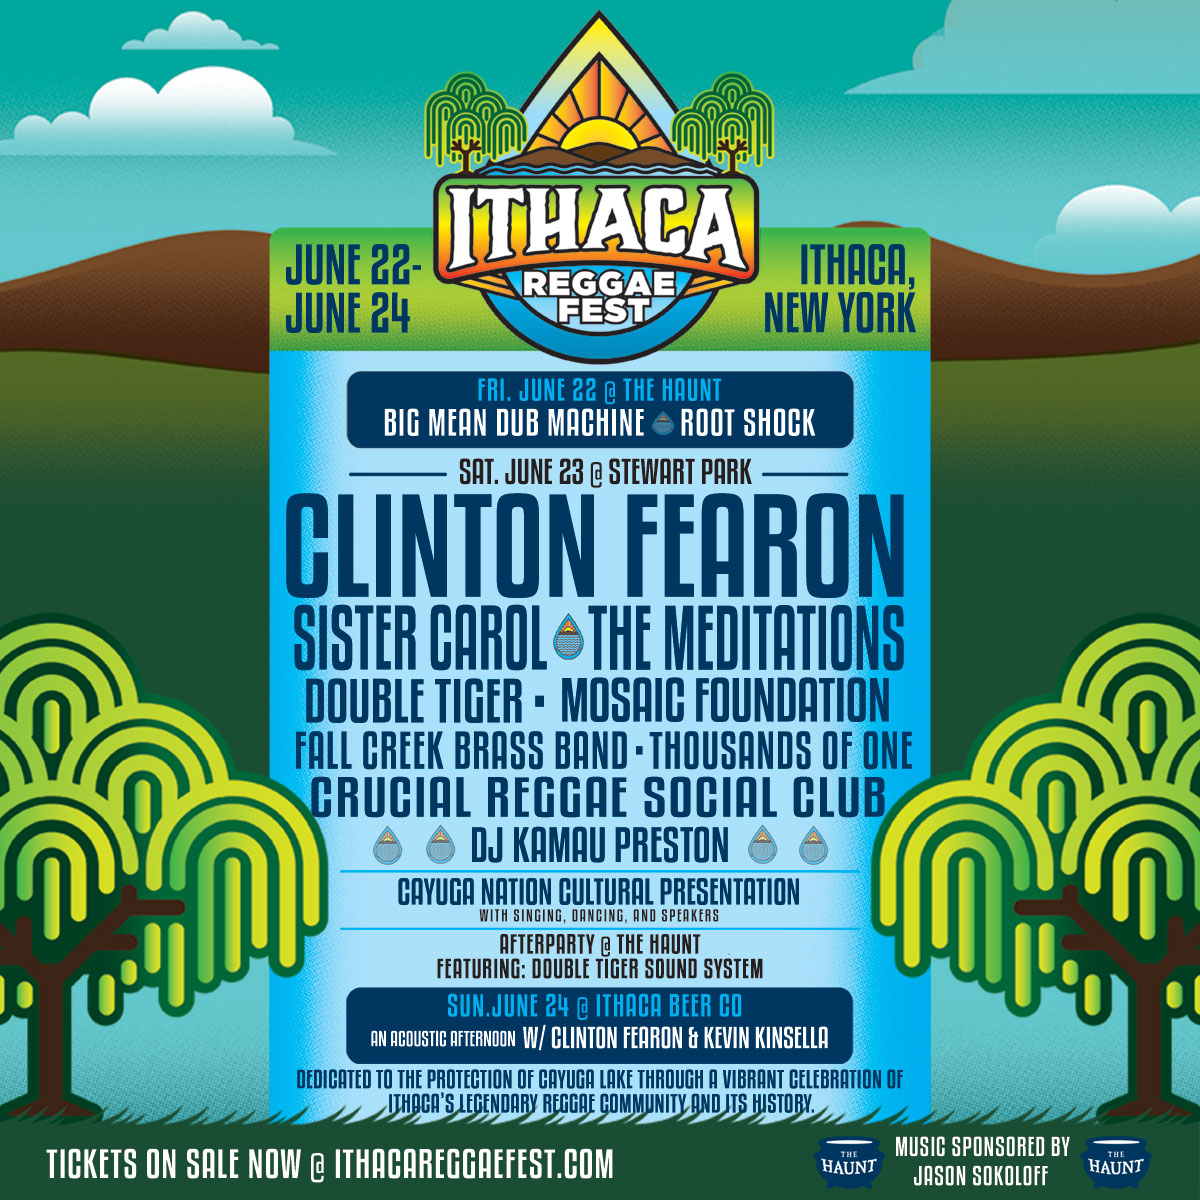 Ithaca Reggae Fest is EXACTLY Where To Be This Weekend